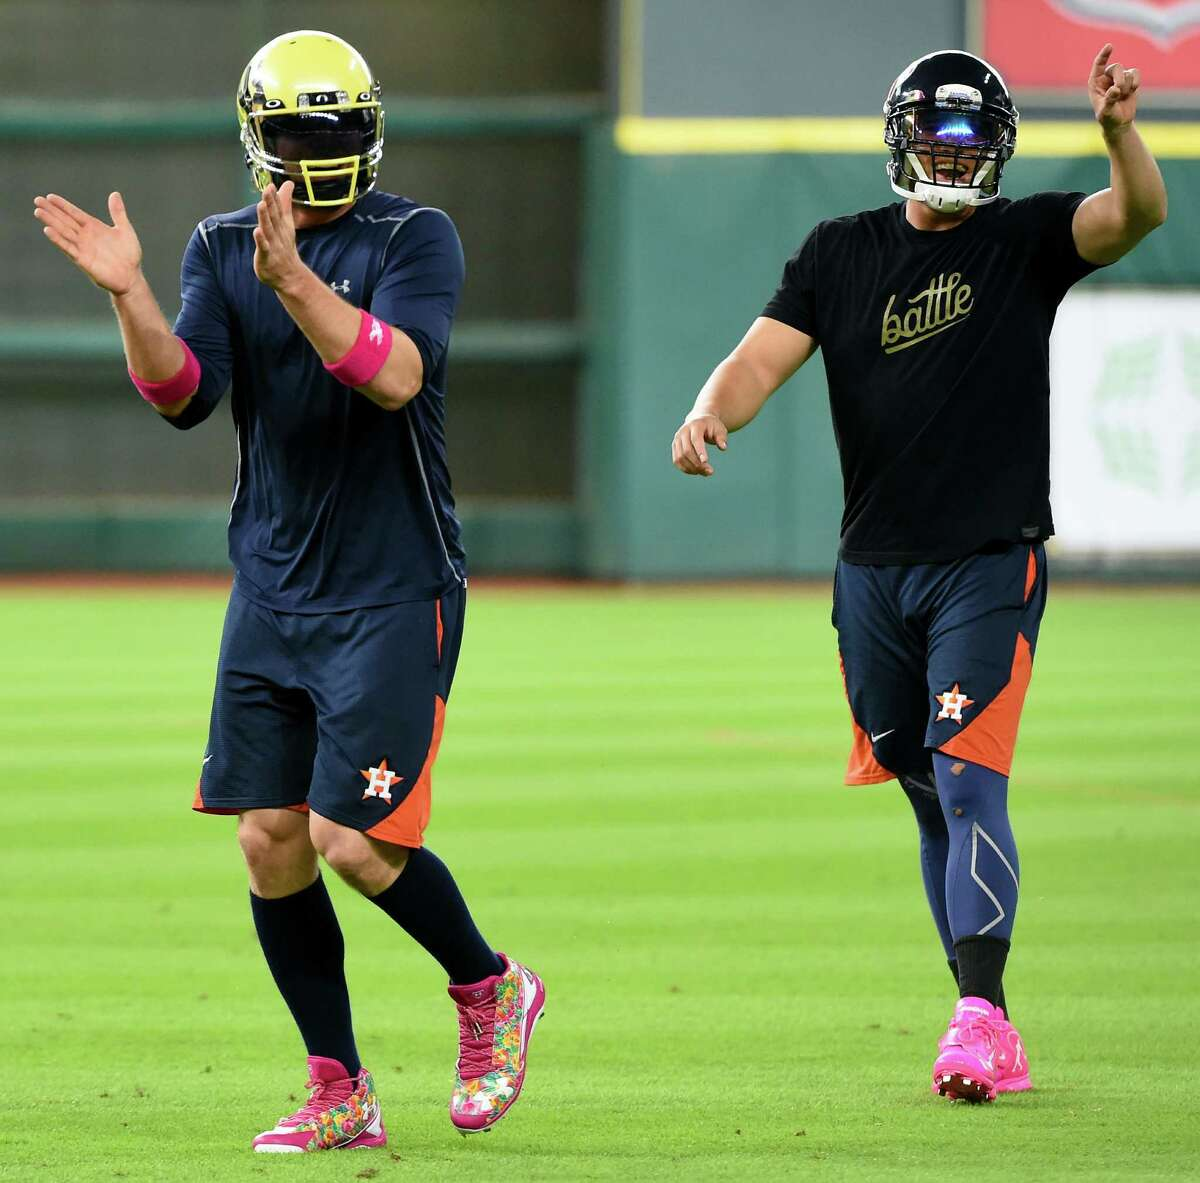 No football allowed Before games, George Springer and Jake Marisnick have taken to playing catch with a football at Minute Maid Park. Sometimes they even go all out and wear football helmets - Marisnick with a helmet from his beloved Oregon Ducks and Springer usually sticking with the hometown Houston Texans. Baseball gods aren't fans of anything other than the American Pastime being played on their hallowed grounds.